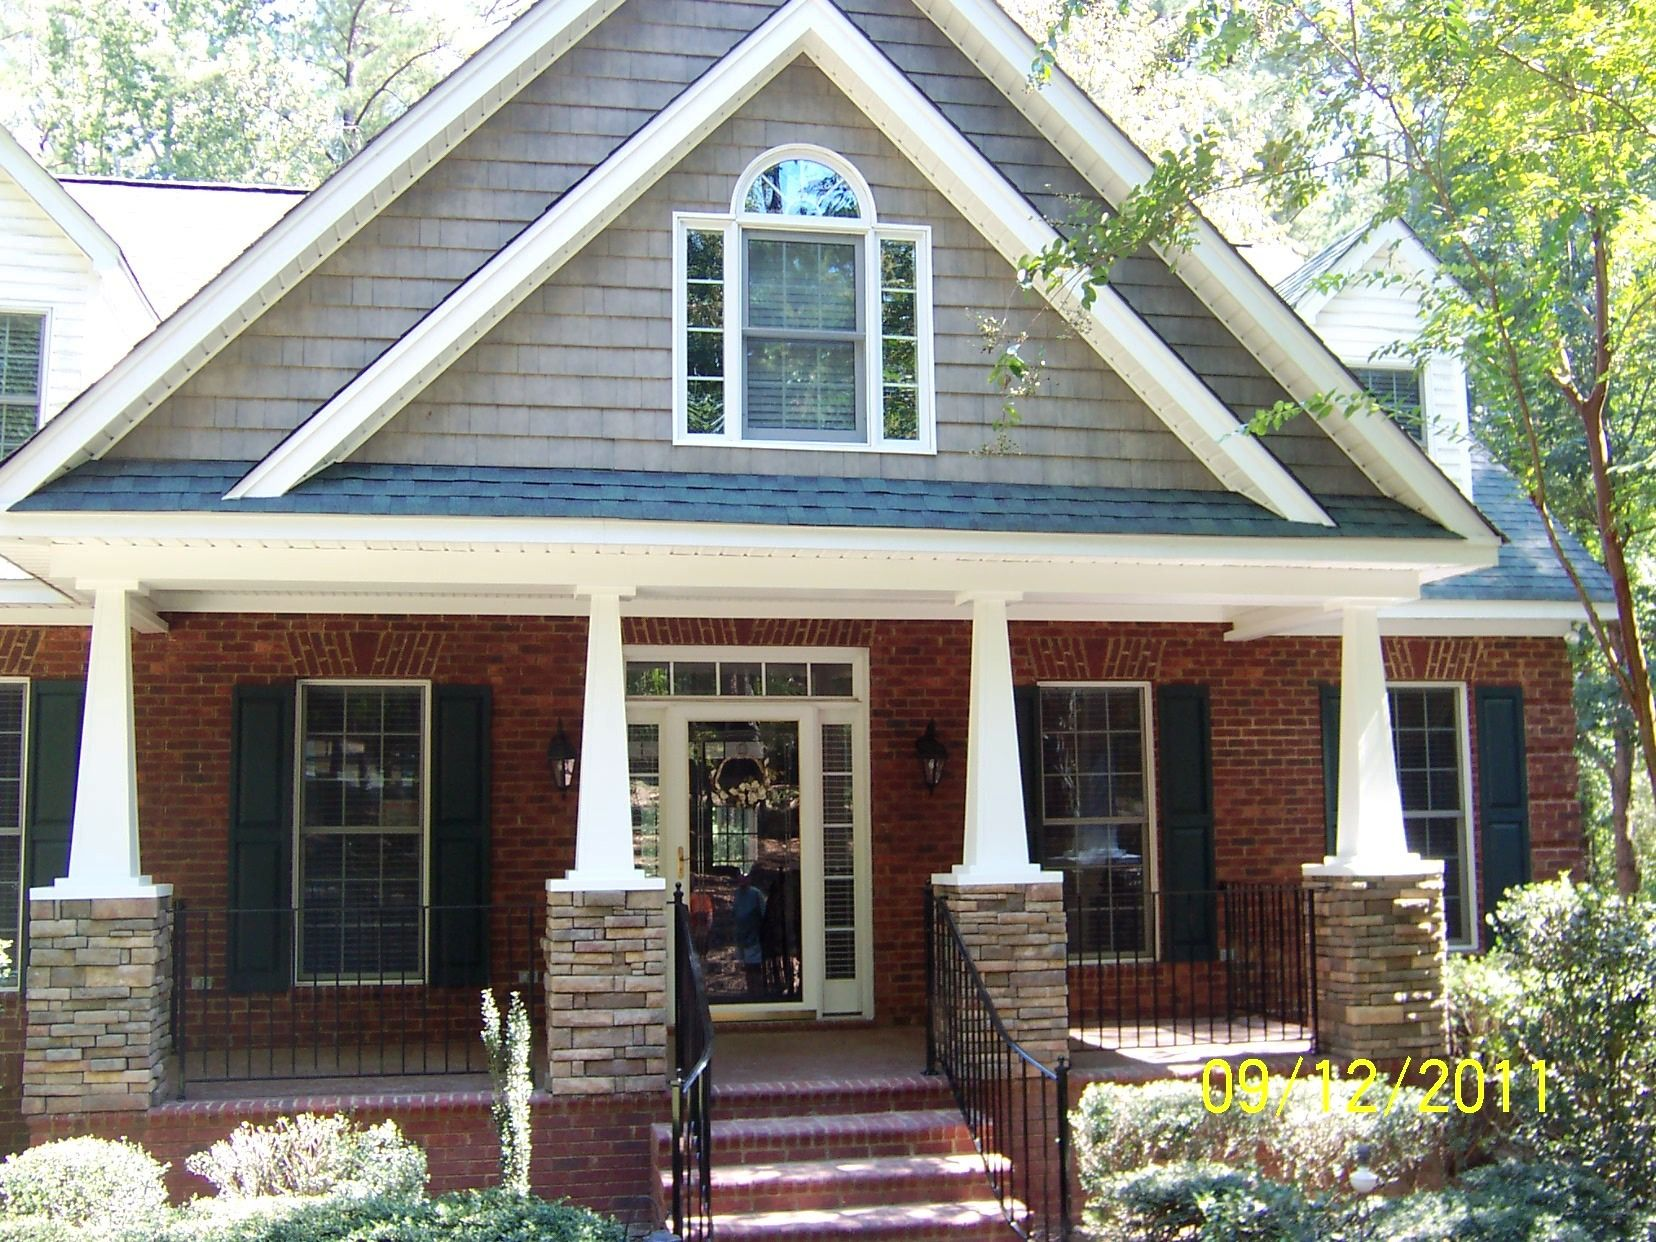 Stone Wrapped Columns And Wrought Iron Rails Porch Exterior Brick Front Porch Columns Front Porch Design